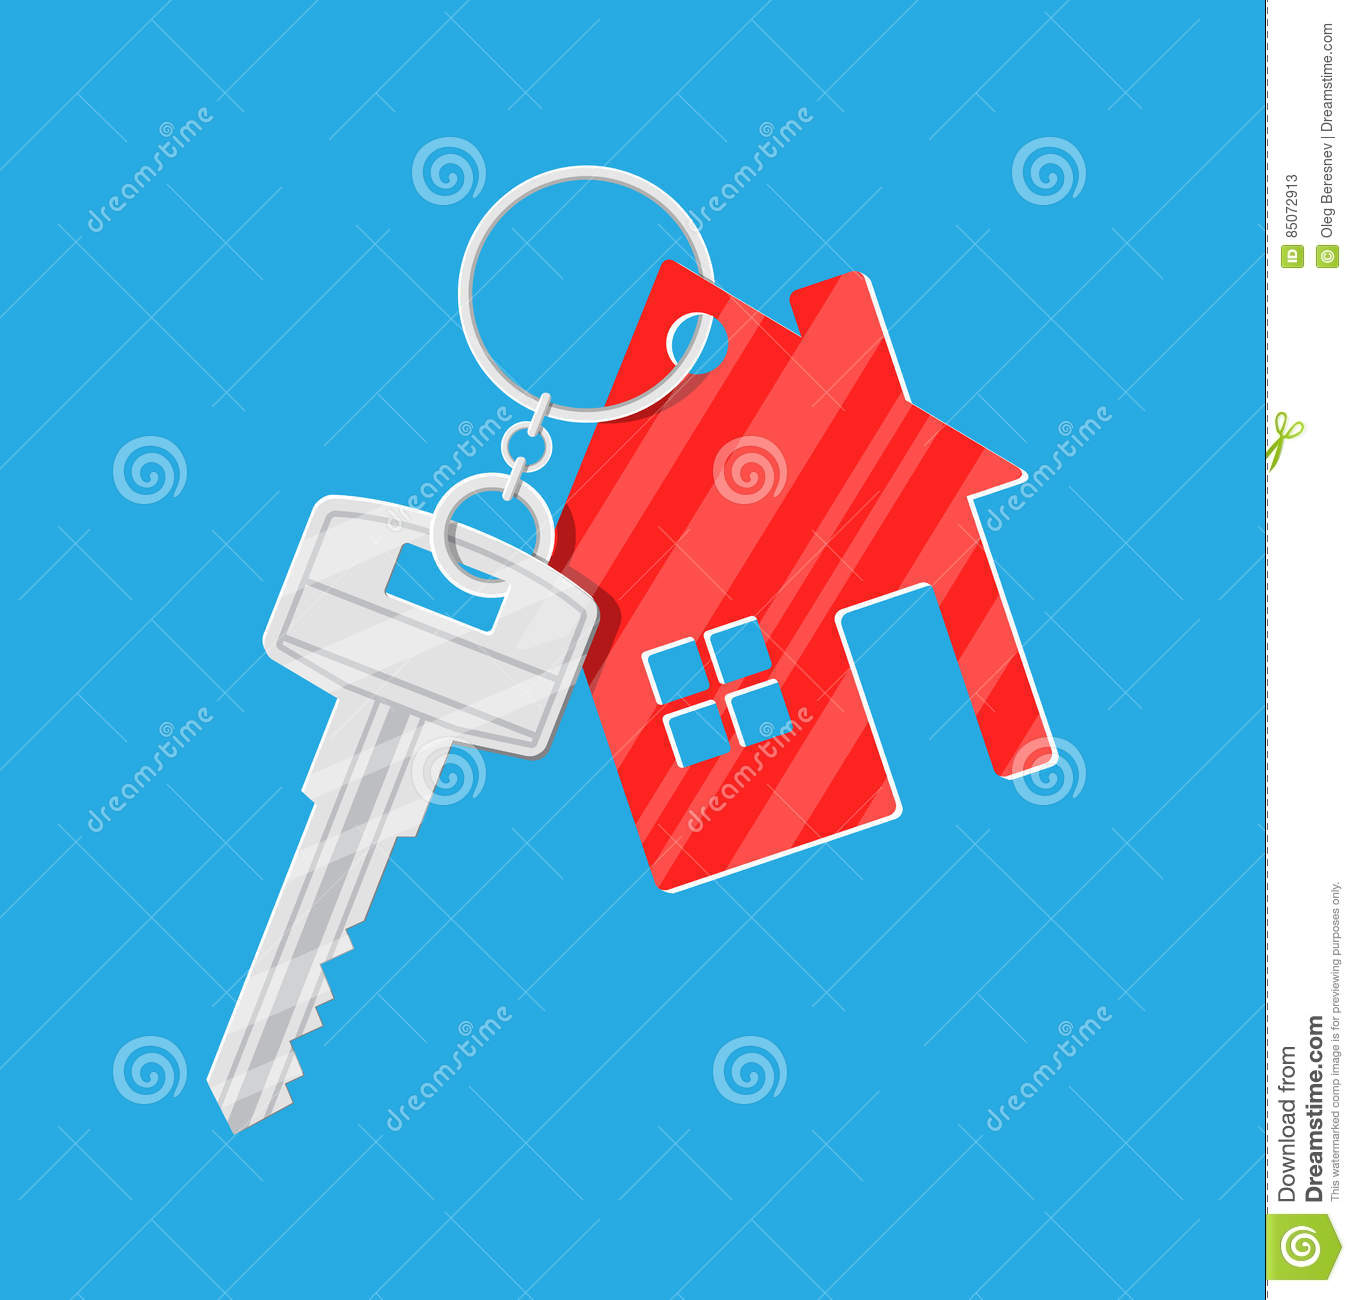 Vector Key Illustration: Metal Key With Keychain House In Flat Style Stock Vector